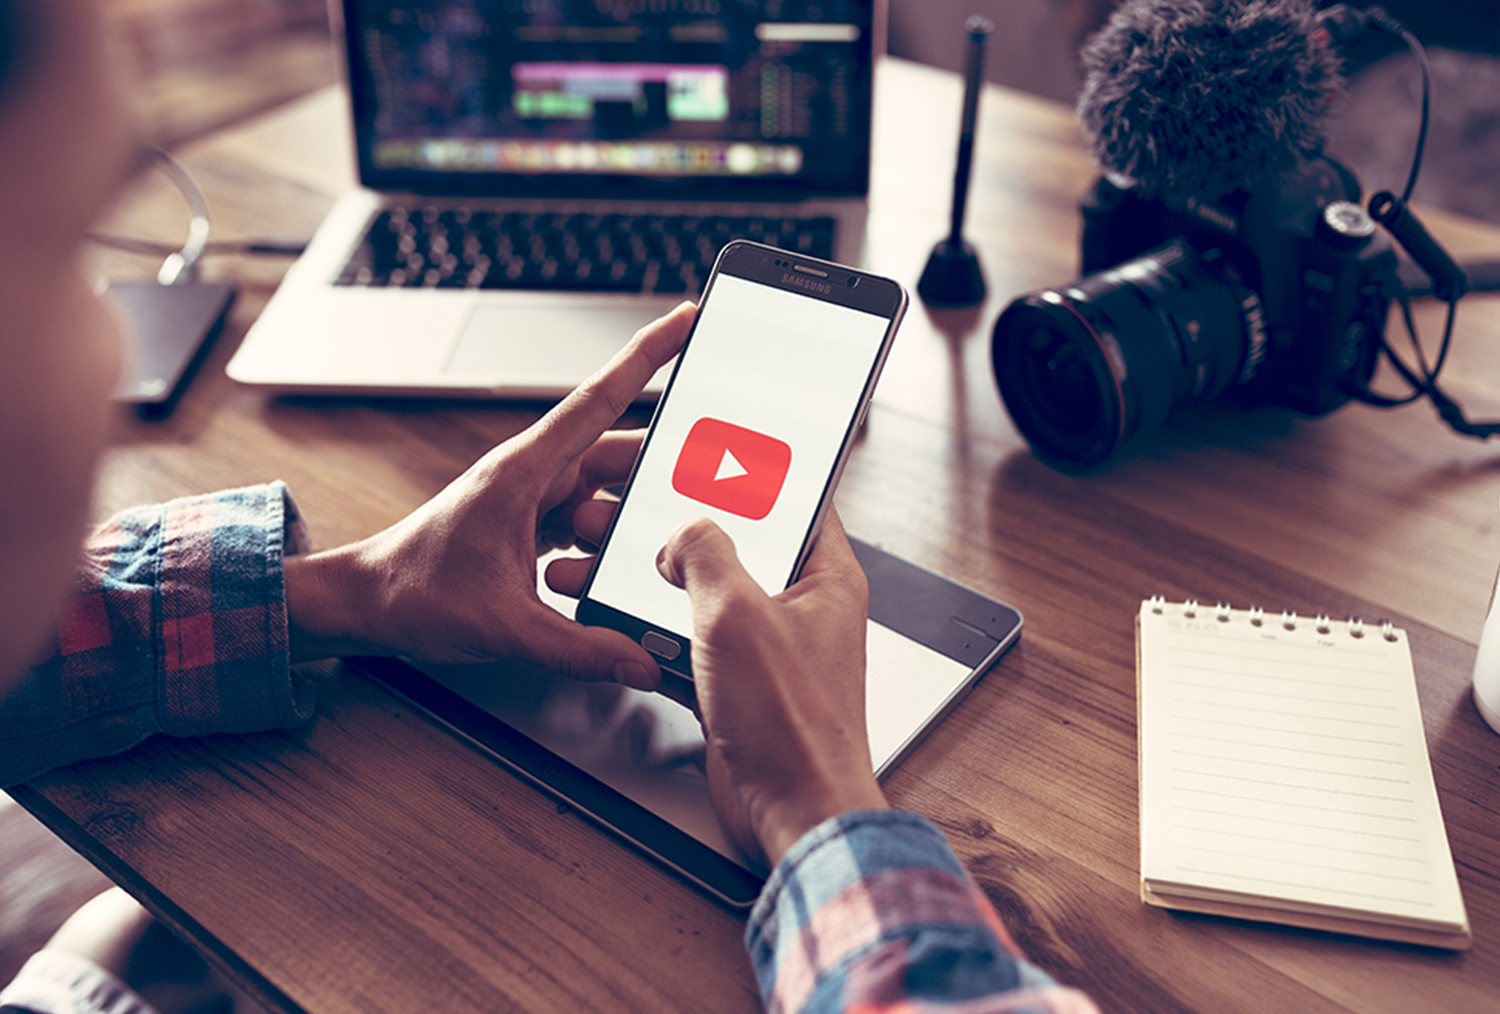 Why Is No One Watching Your Video Content?